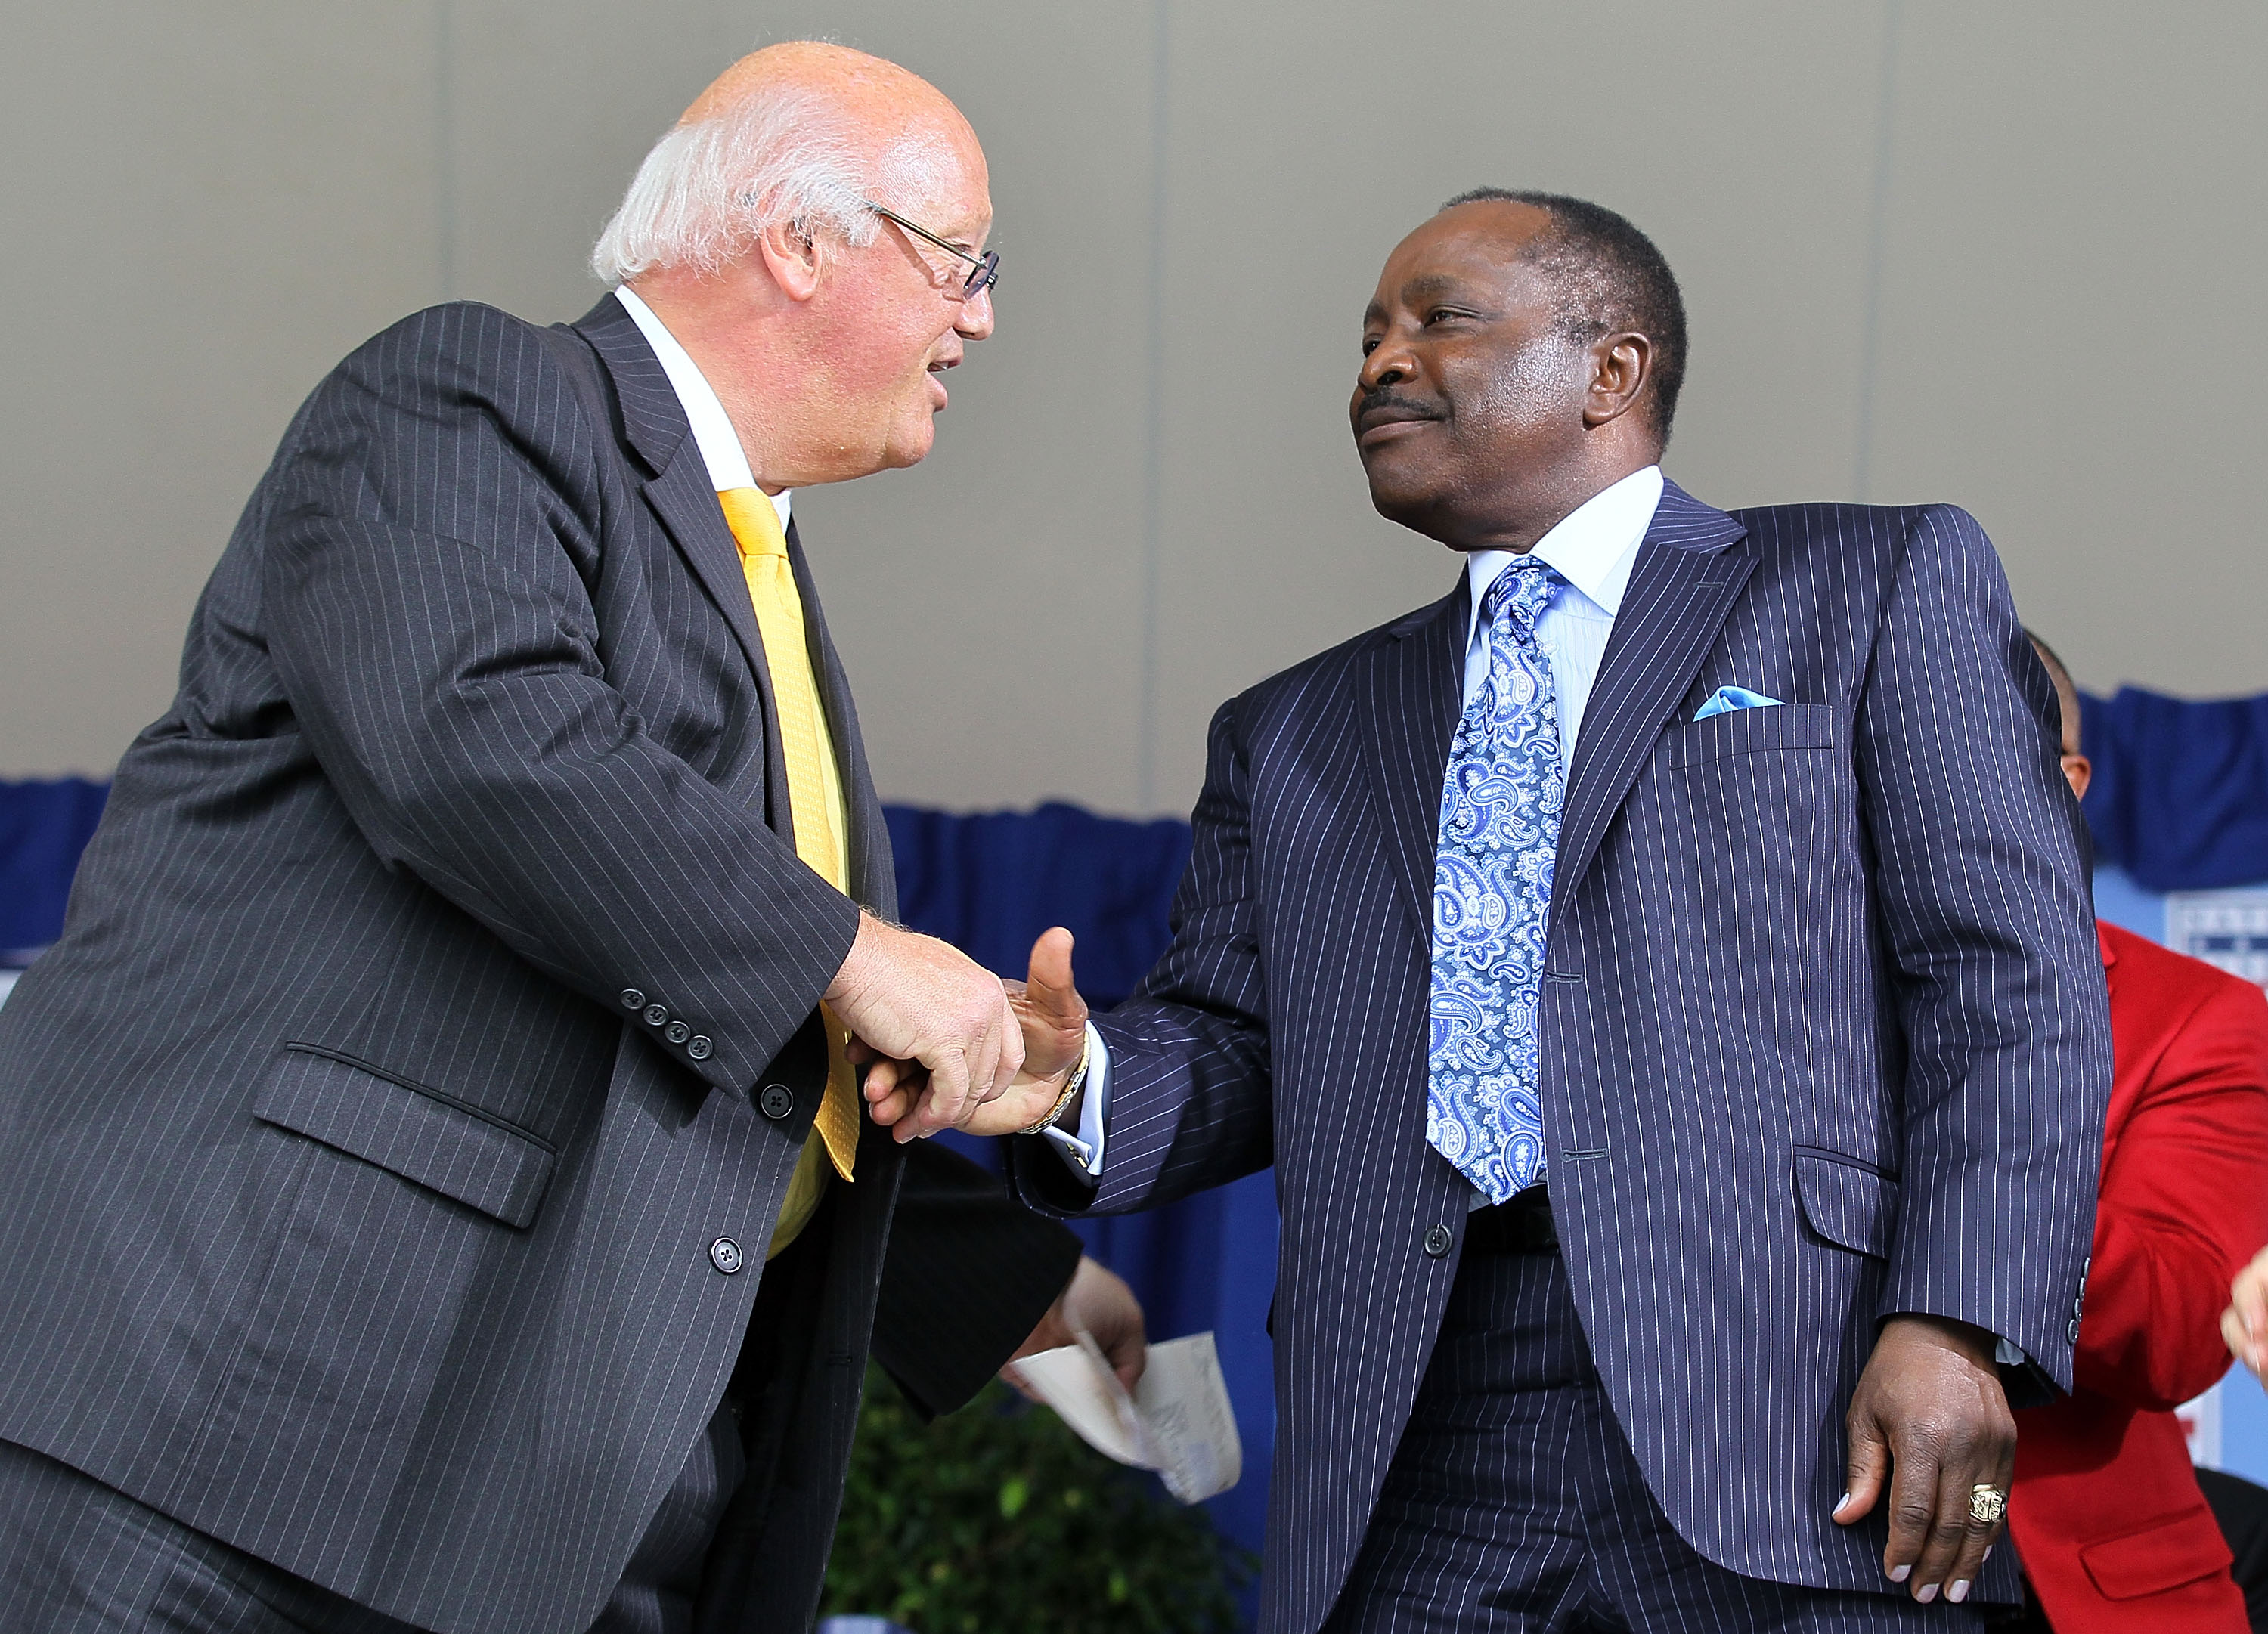 COOPERSTOWN, NY - JULY 25:  Jon Miller (L) shakes hands with Hall of Famer Joe Morgan after Miller received the Ford C. Frick award for contributions in baseball broadcasting at Clark Sports Center during the Baseball Hall of Fame induction ceremony on Ju